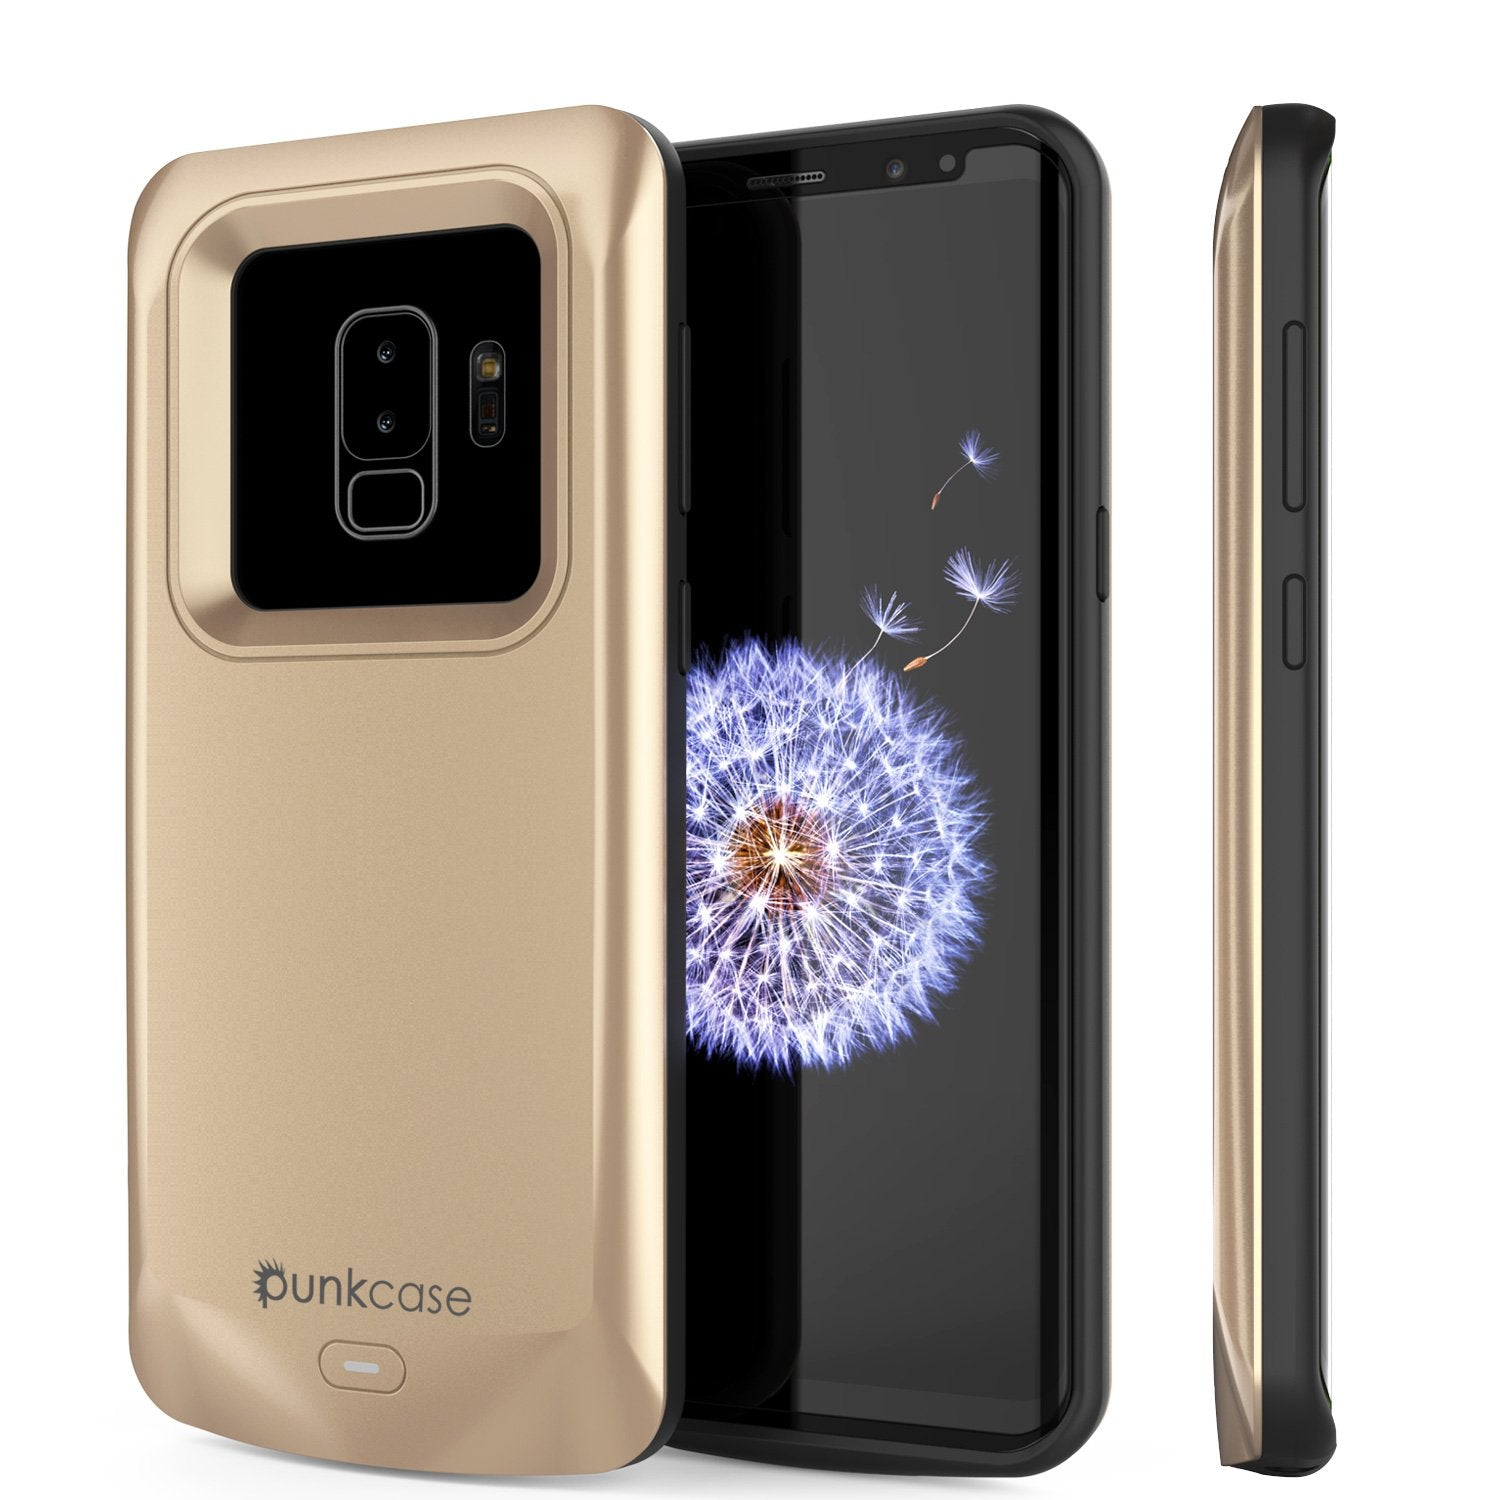 Galaxy S9 PLUS Battery Case, PunkJuice 5000mAH Fast Charging Power Bank W/ Screen Protector | Integrated USB Port | IntelSwitch | Slim, Secure and Reliable | Suitable for Samsung Galaxy S9+ [Gold]